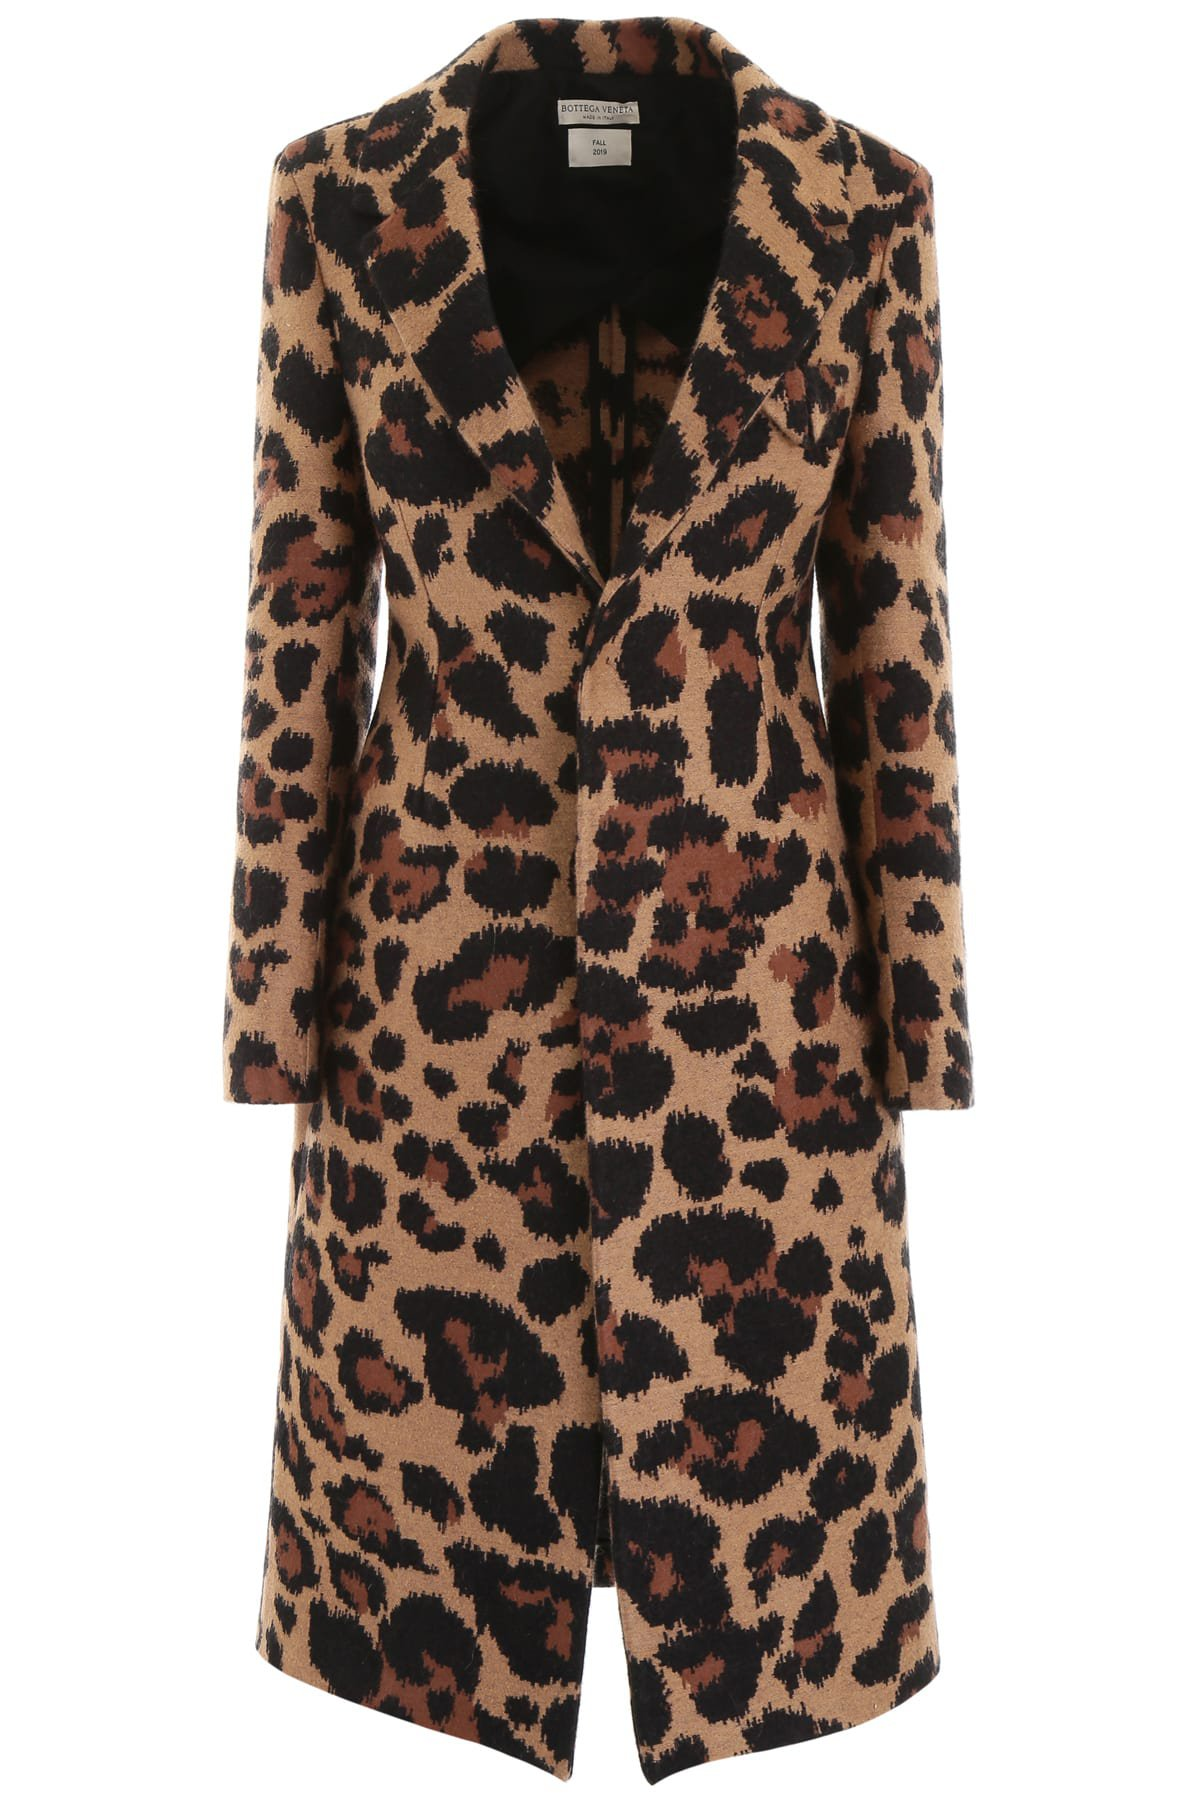 Bottega Veneta Animalier Coat